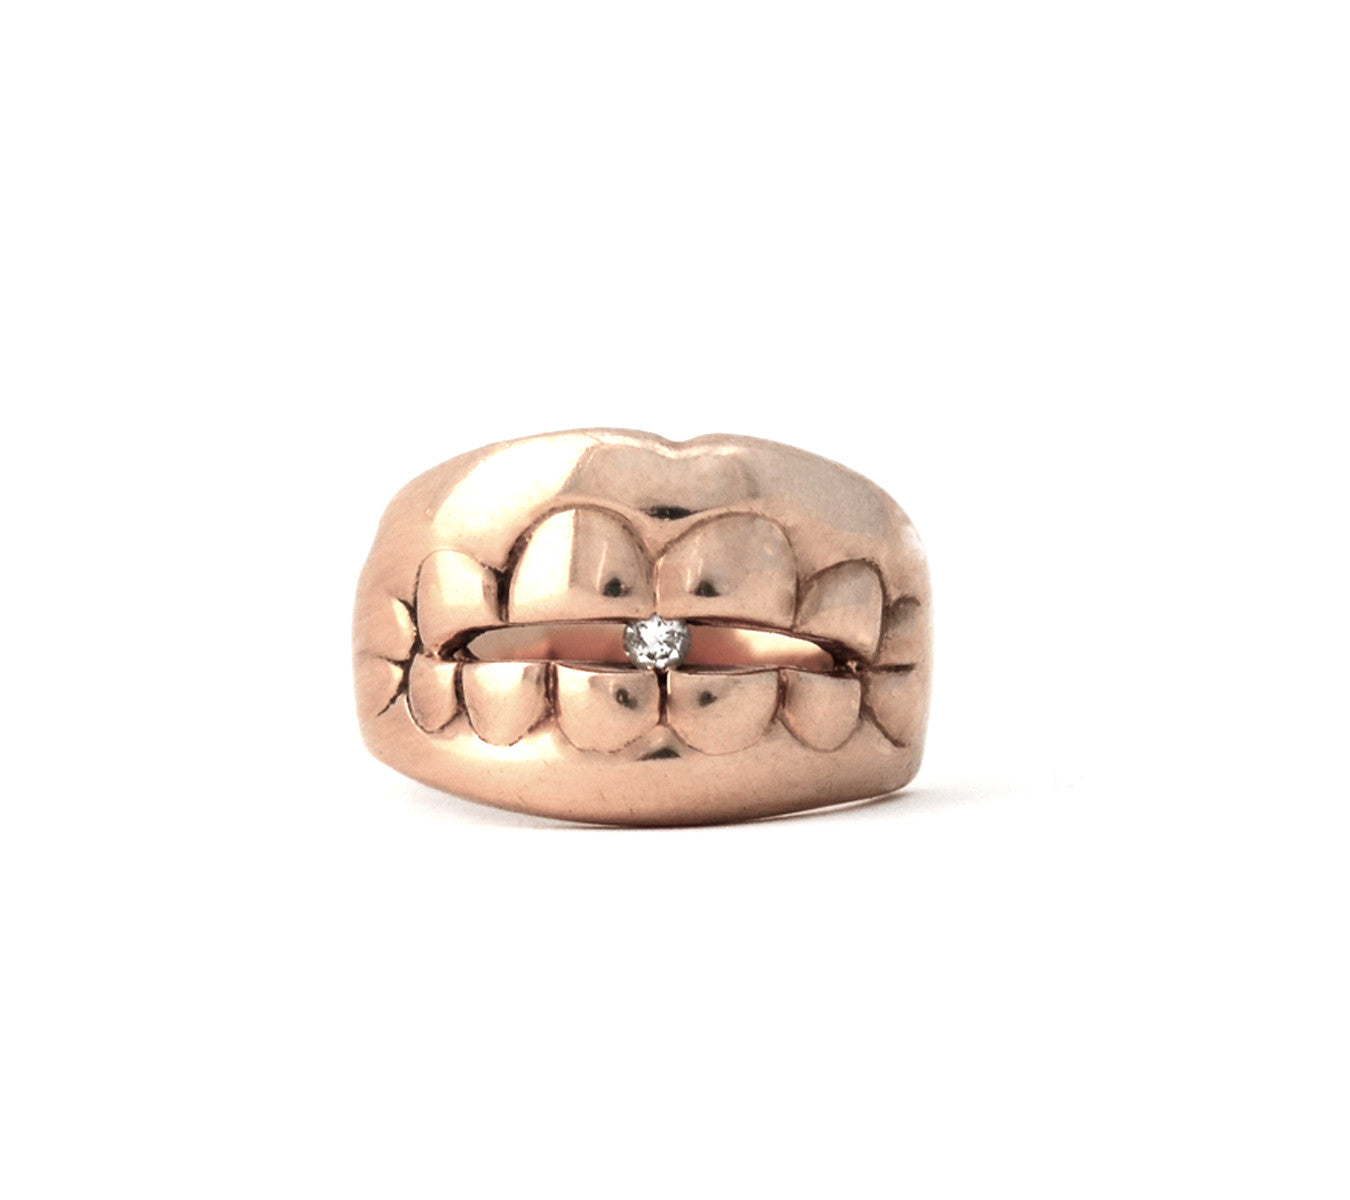 14k Gold Unisex Bite Ring